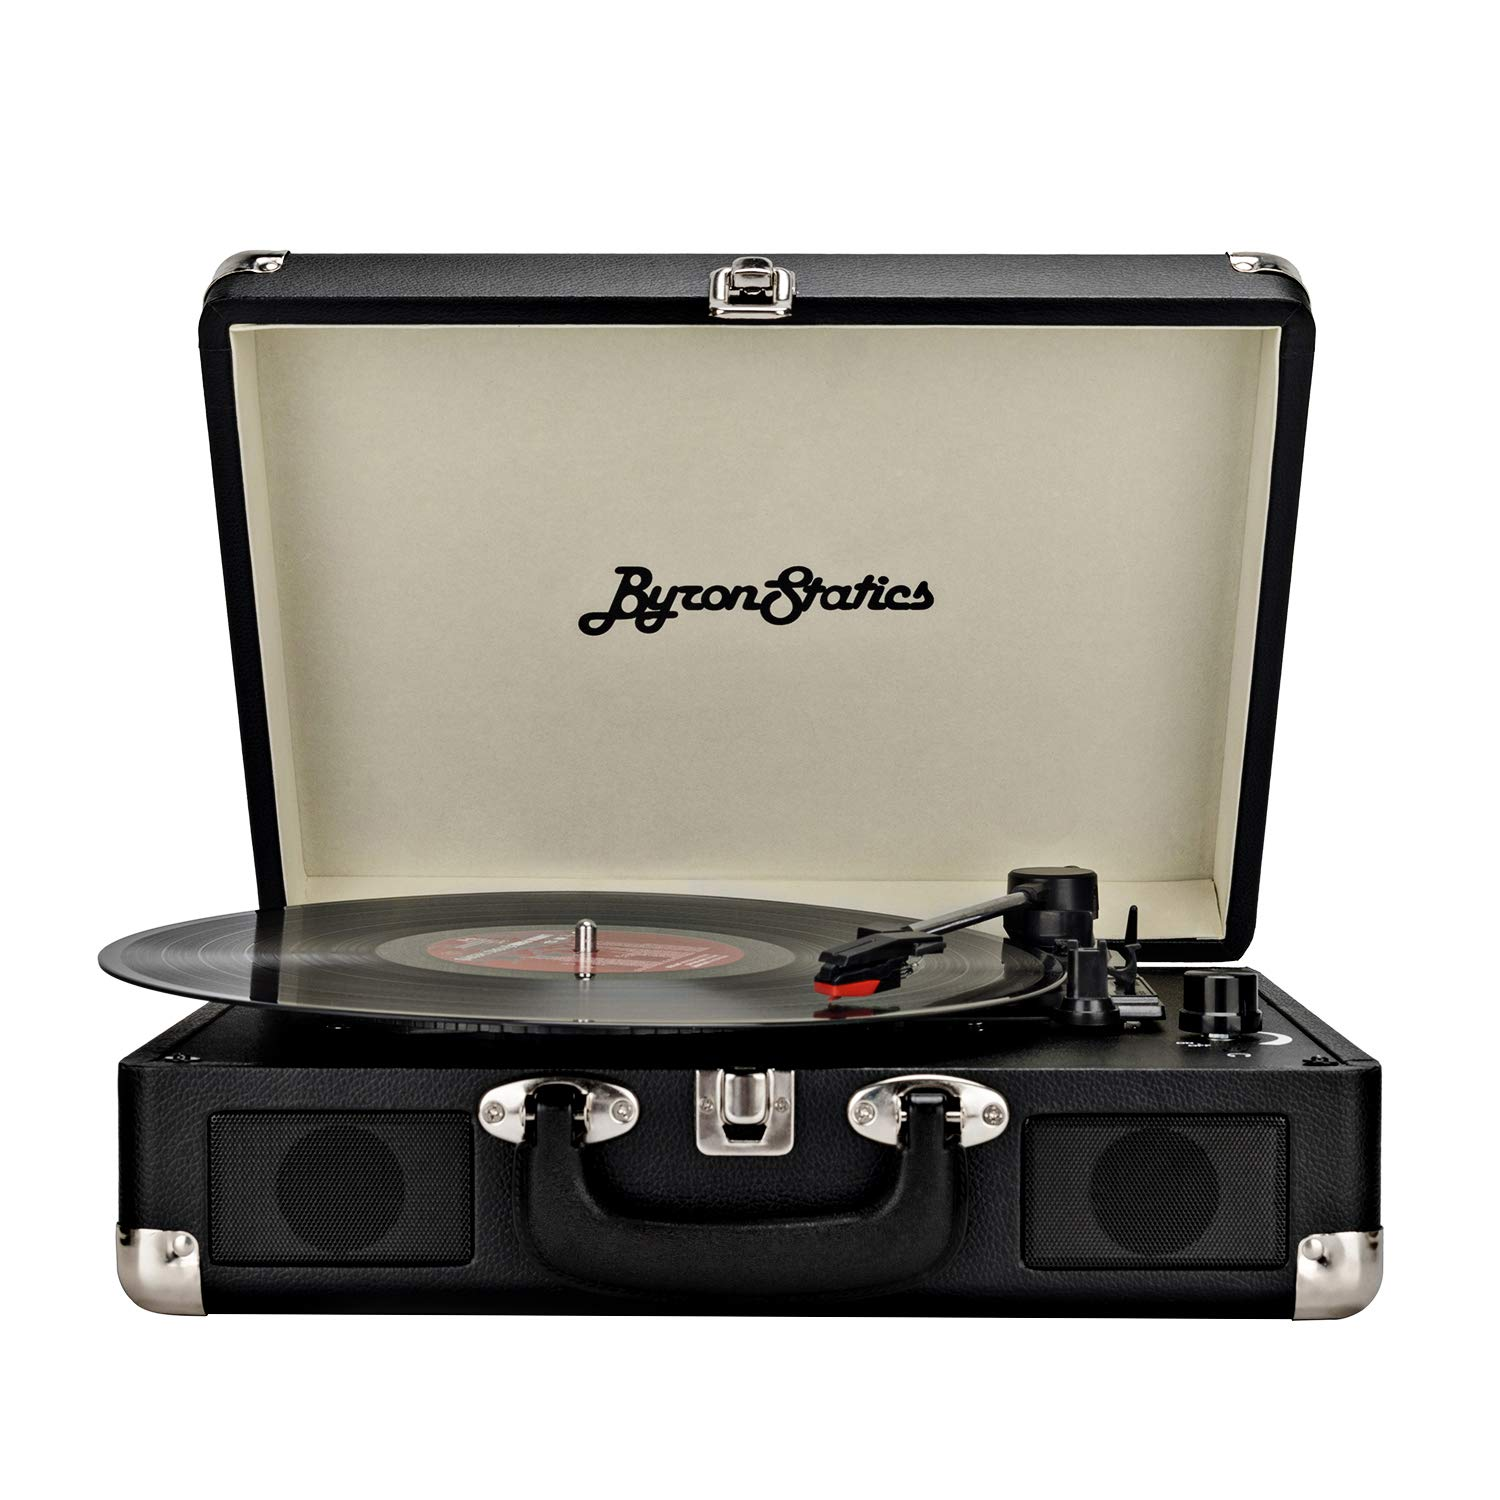 Byron Statics Record Player Vinyl Vintage Turntable Portable Nostalgic 3-Speed 2 Stereo Speakers Replacement Needle 9V 0.8A DC in Standard RCA Headphone Outputs Black by Byron Statics